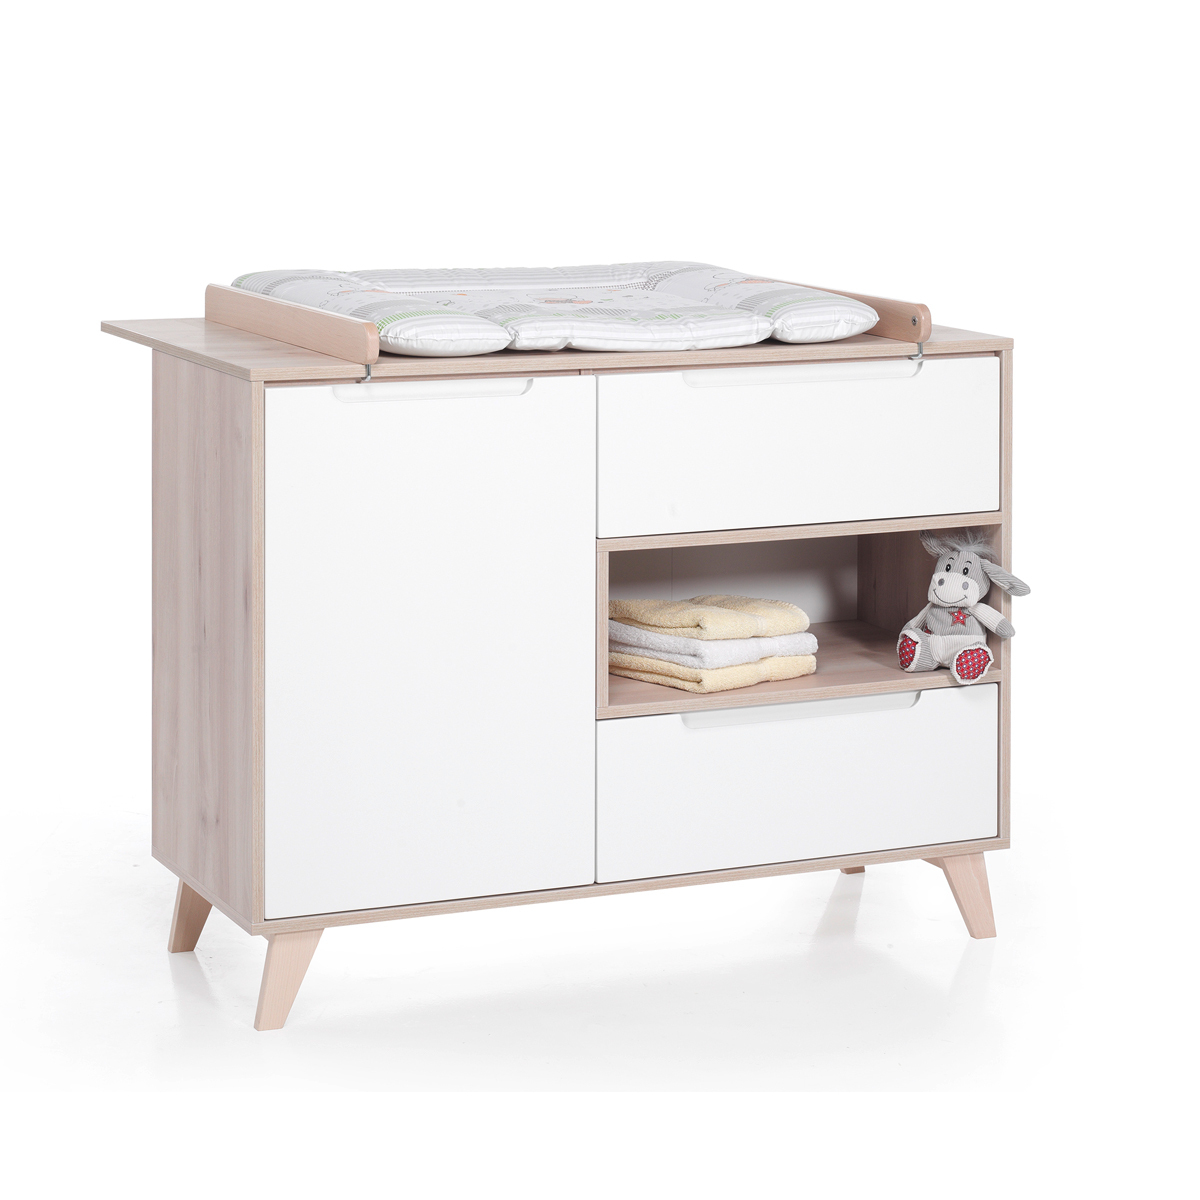 Geuther commode avec plan langer collection mette - Plan a langer adaptable sur toute commode ...